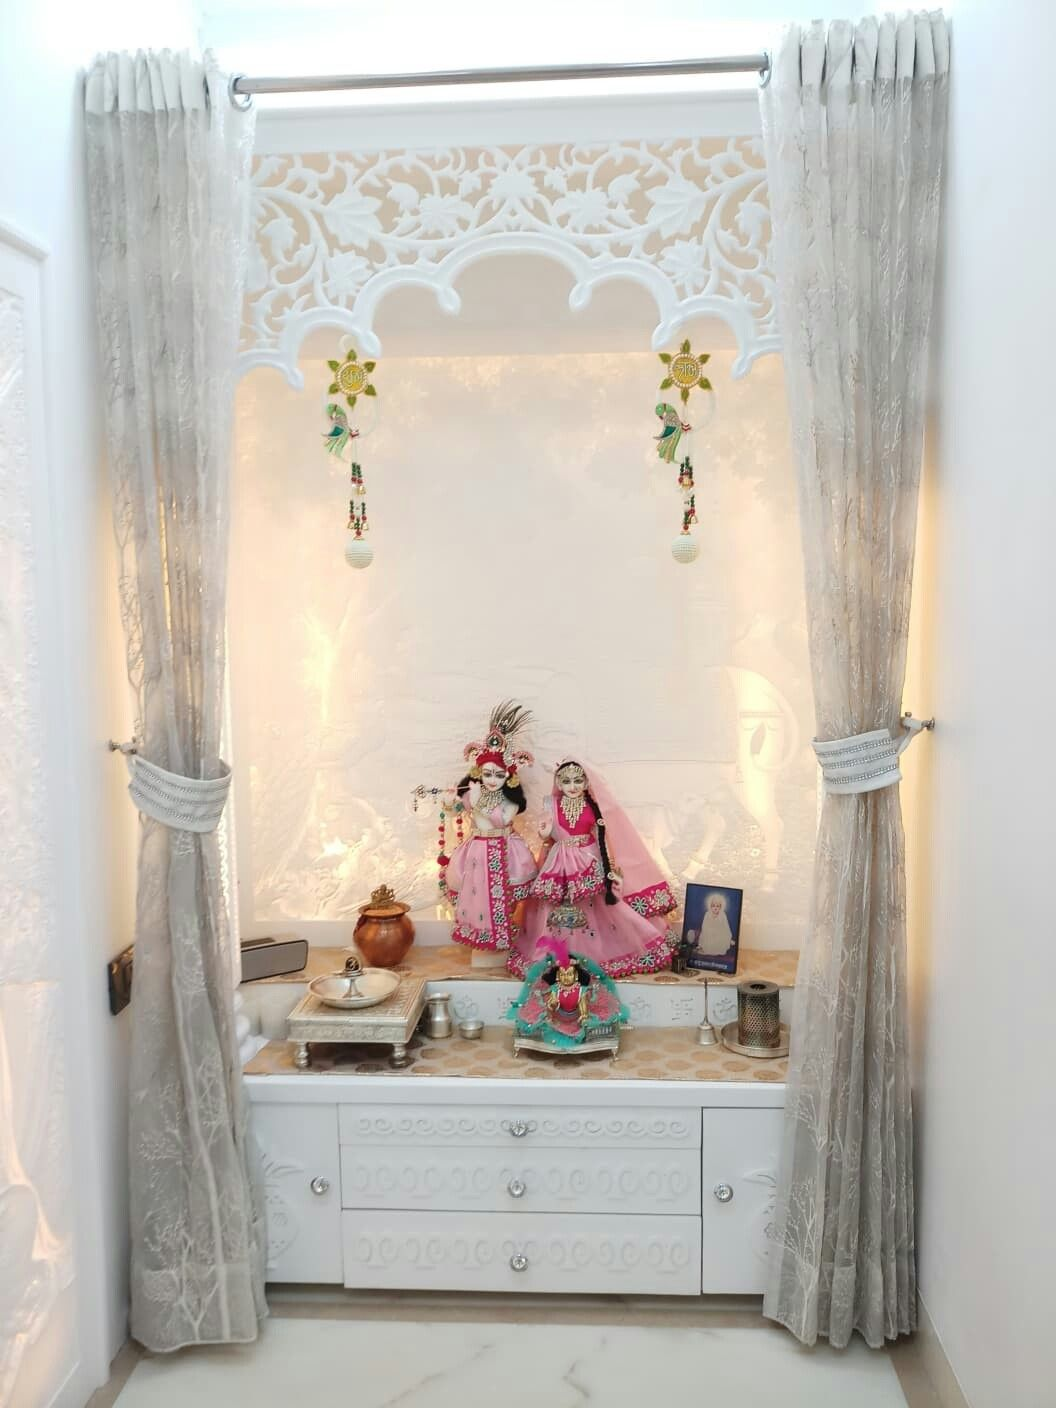 Pin By Megha Naik On Home Pooja Room Design Pooja Room